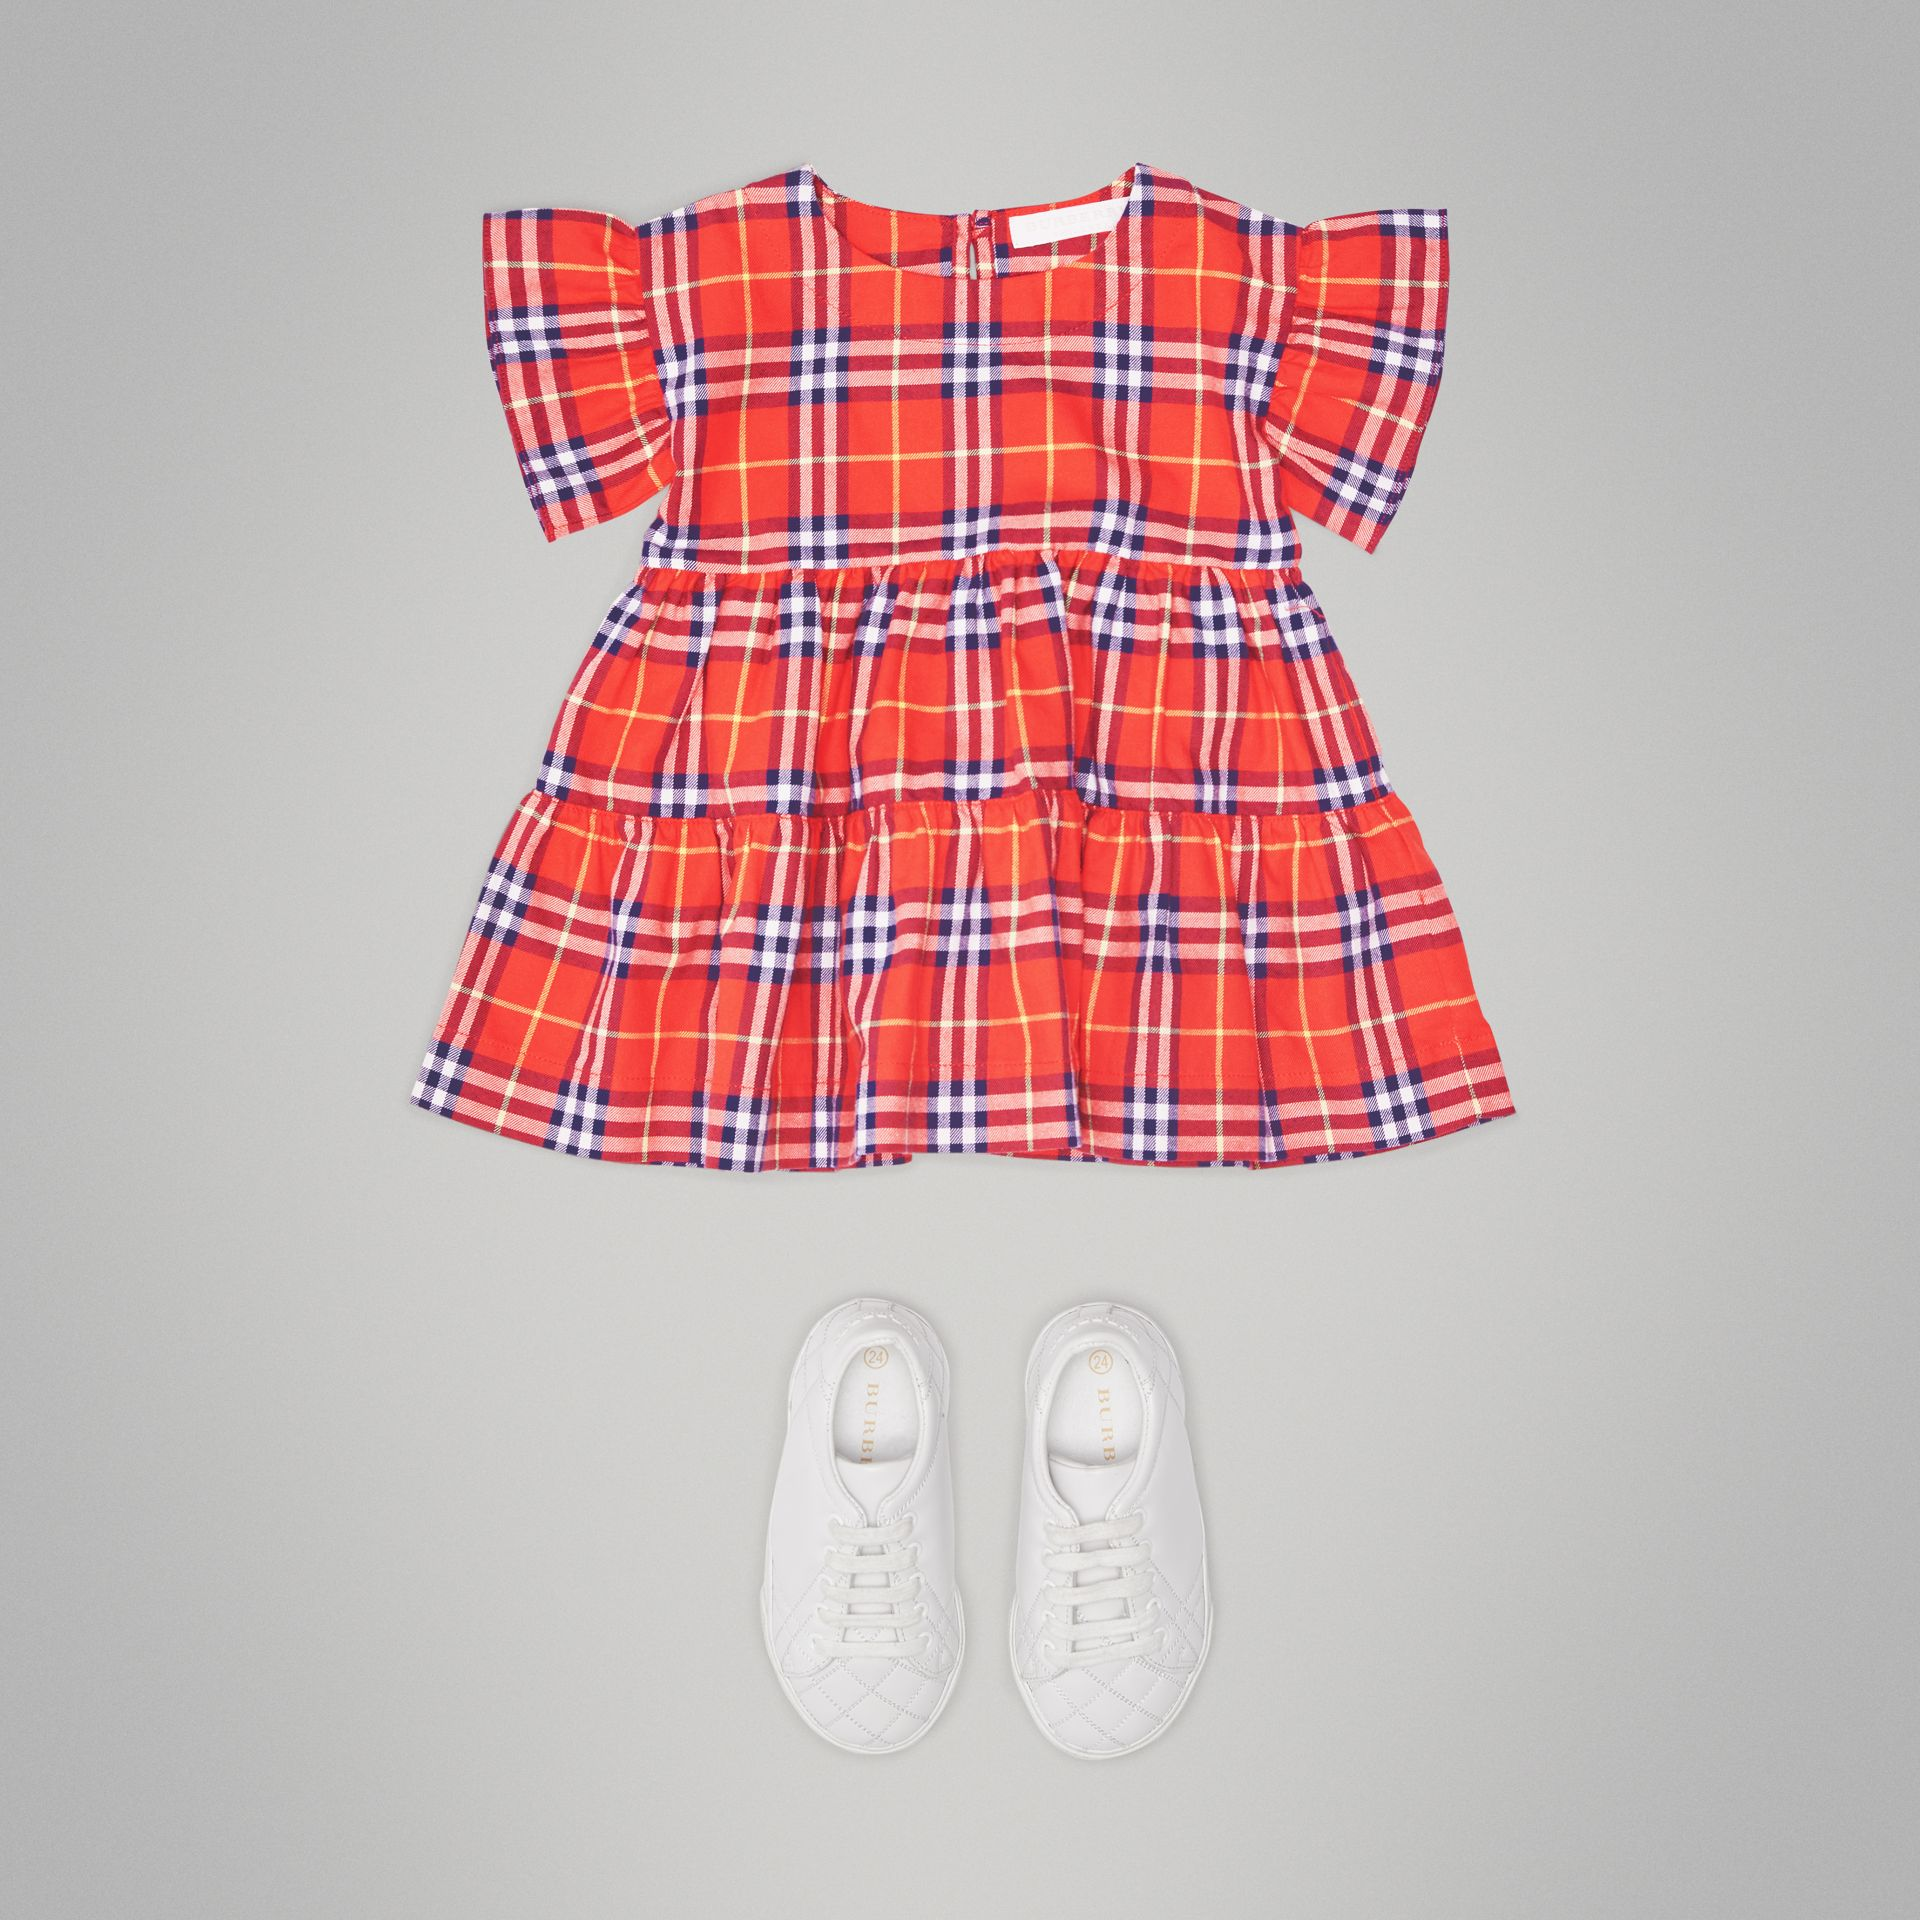 Ruffle Detail Cotton Check Dress in Orange Red - Children | Burberry United Kingdom - gallery image 2